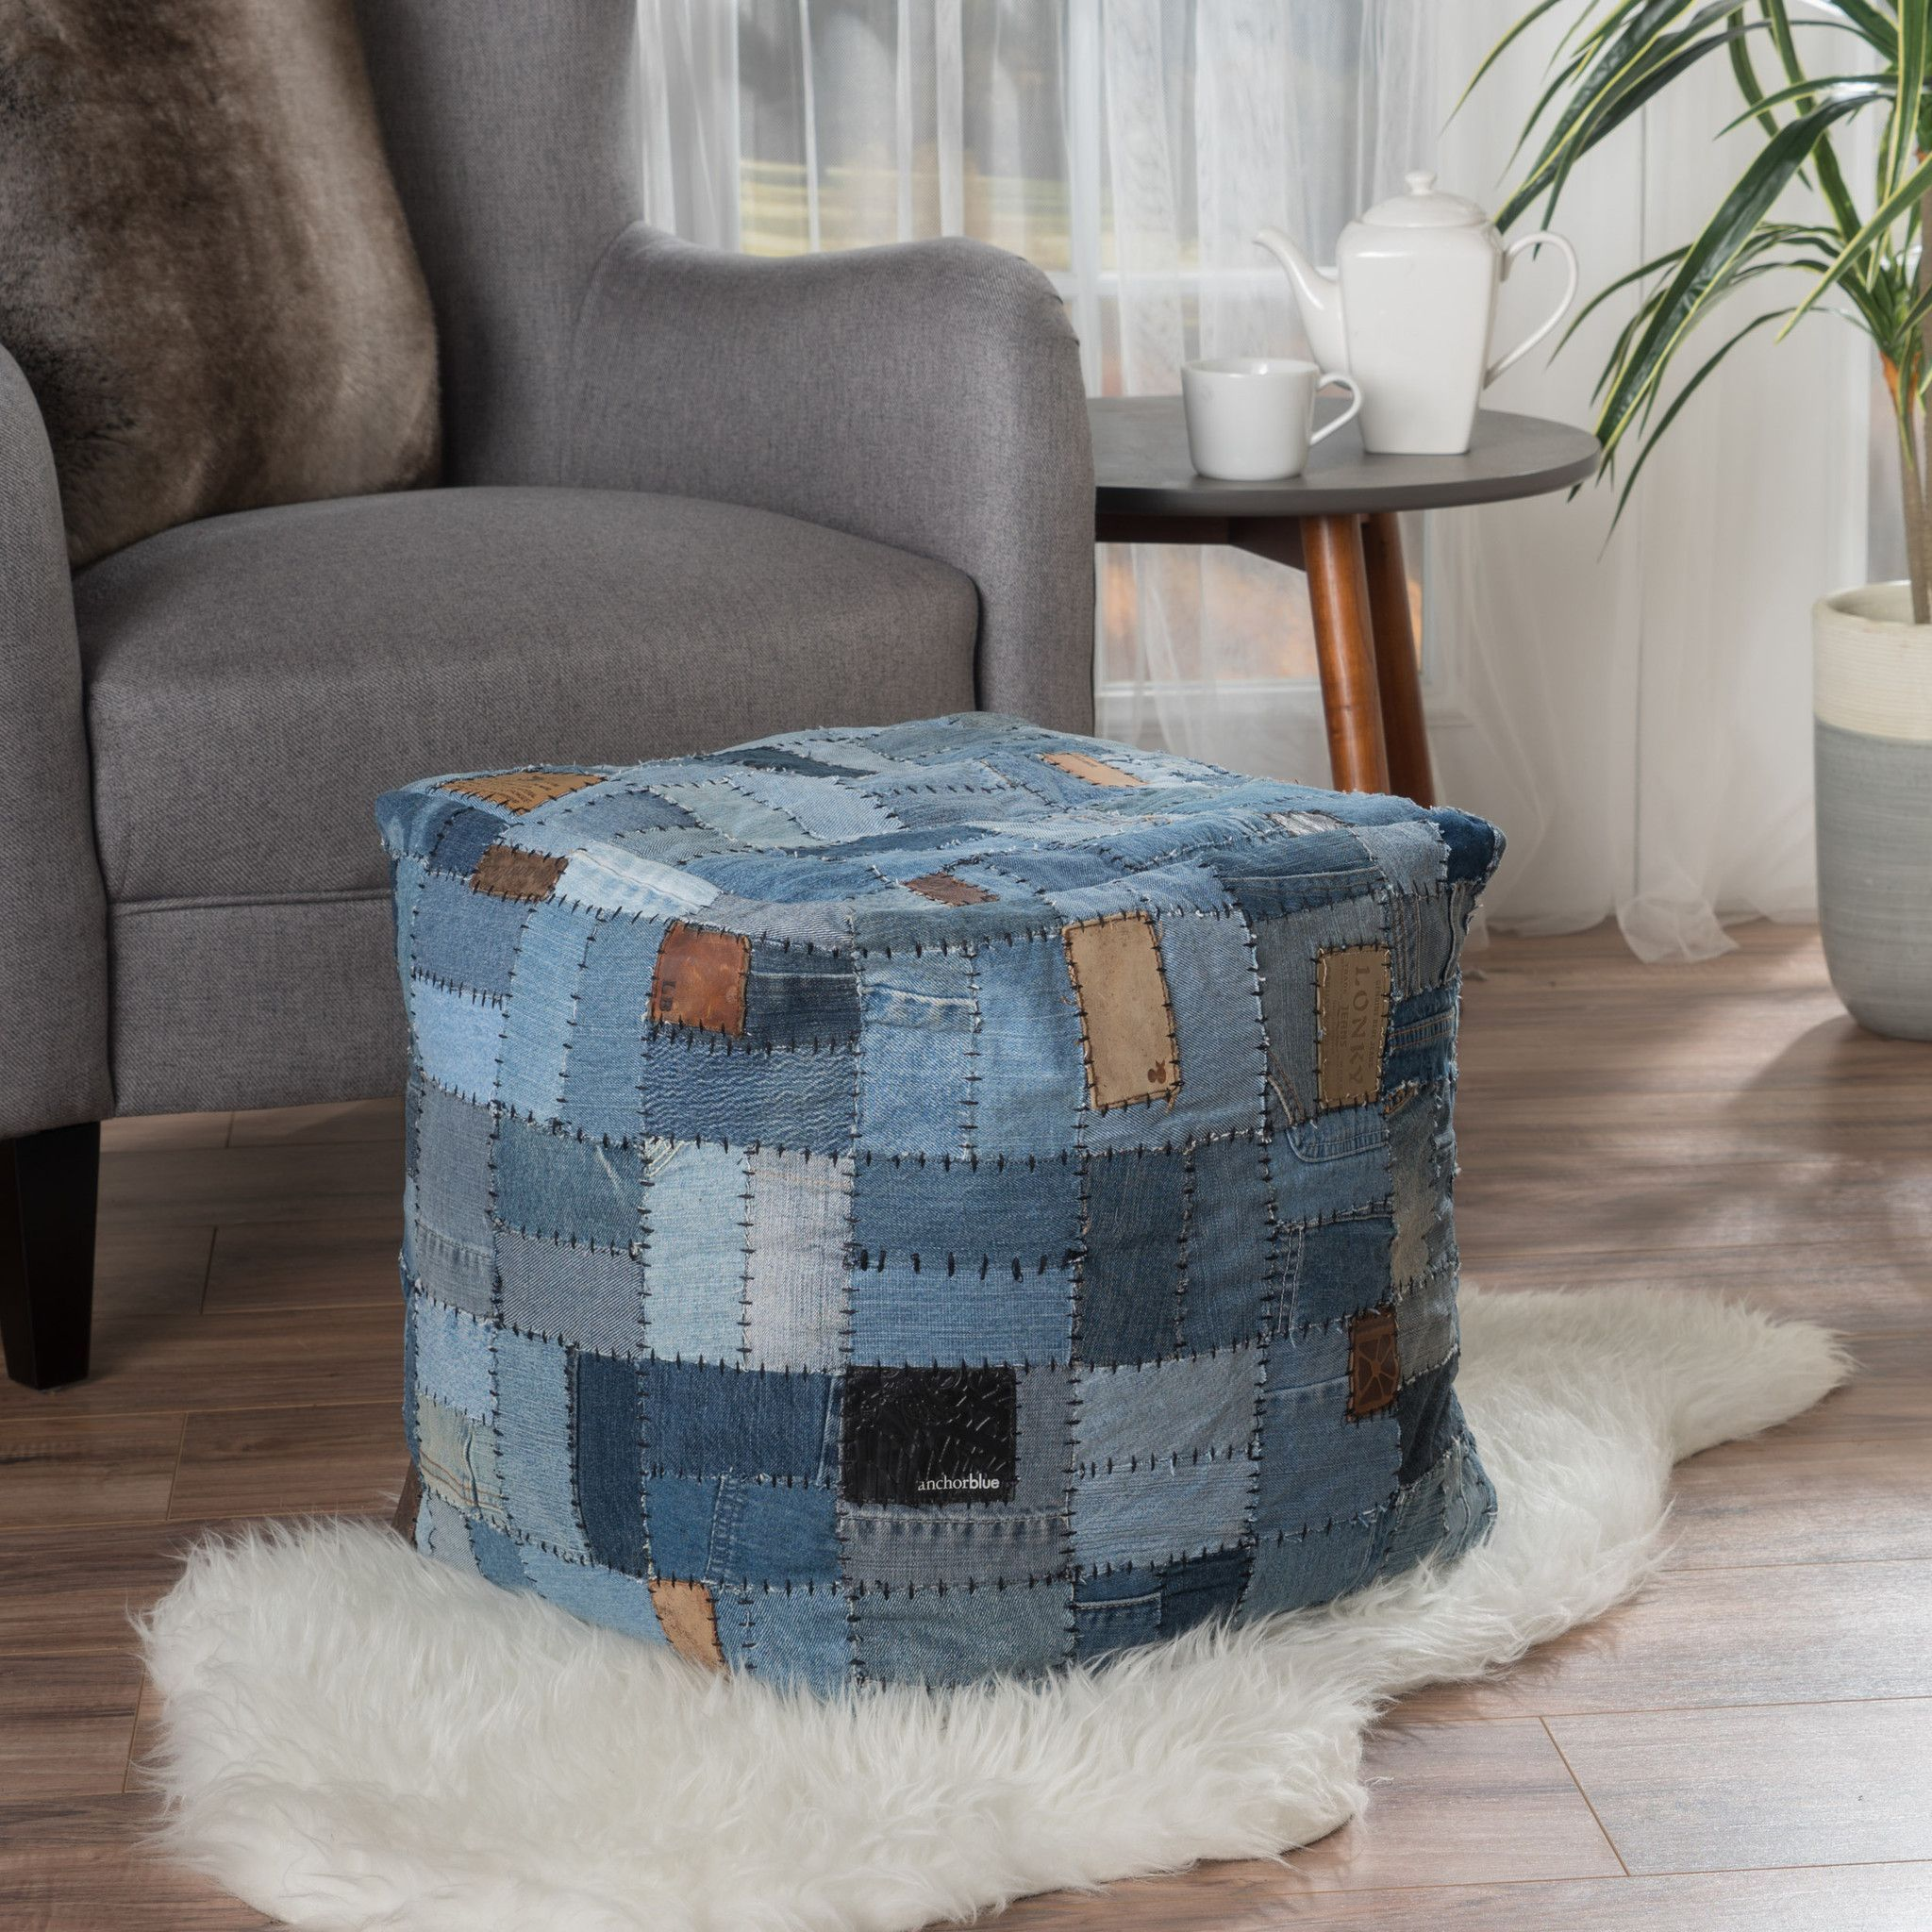 Kouture Artisan Jeans Label Patchwork Pouf The patchwork of ...